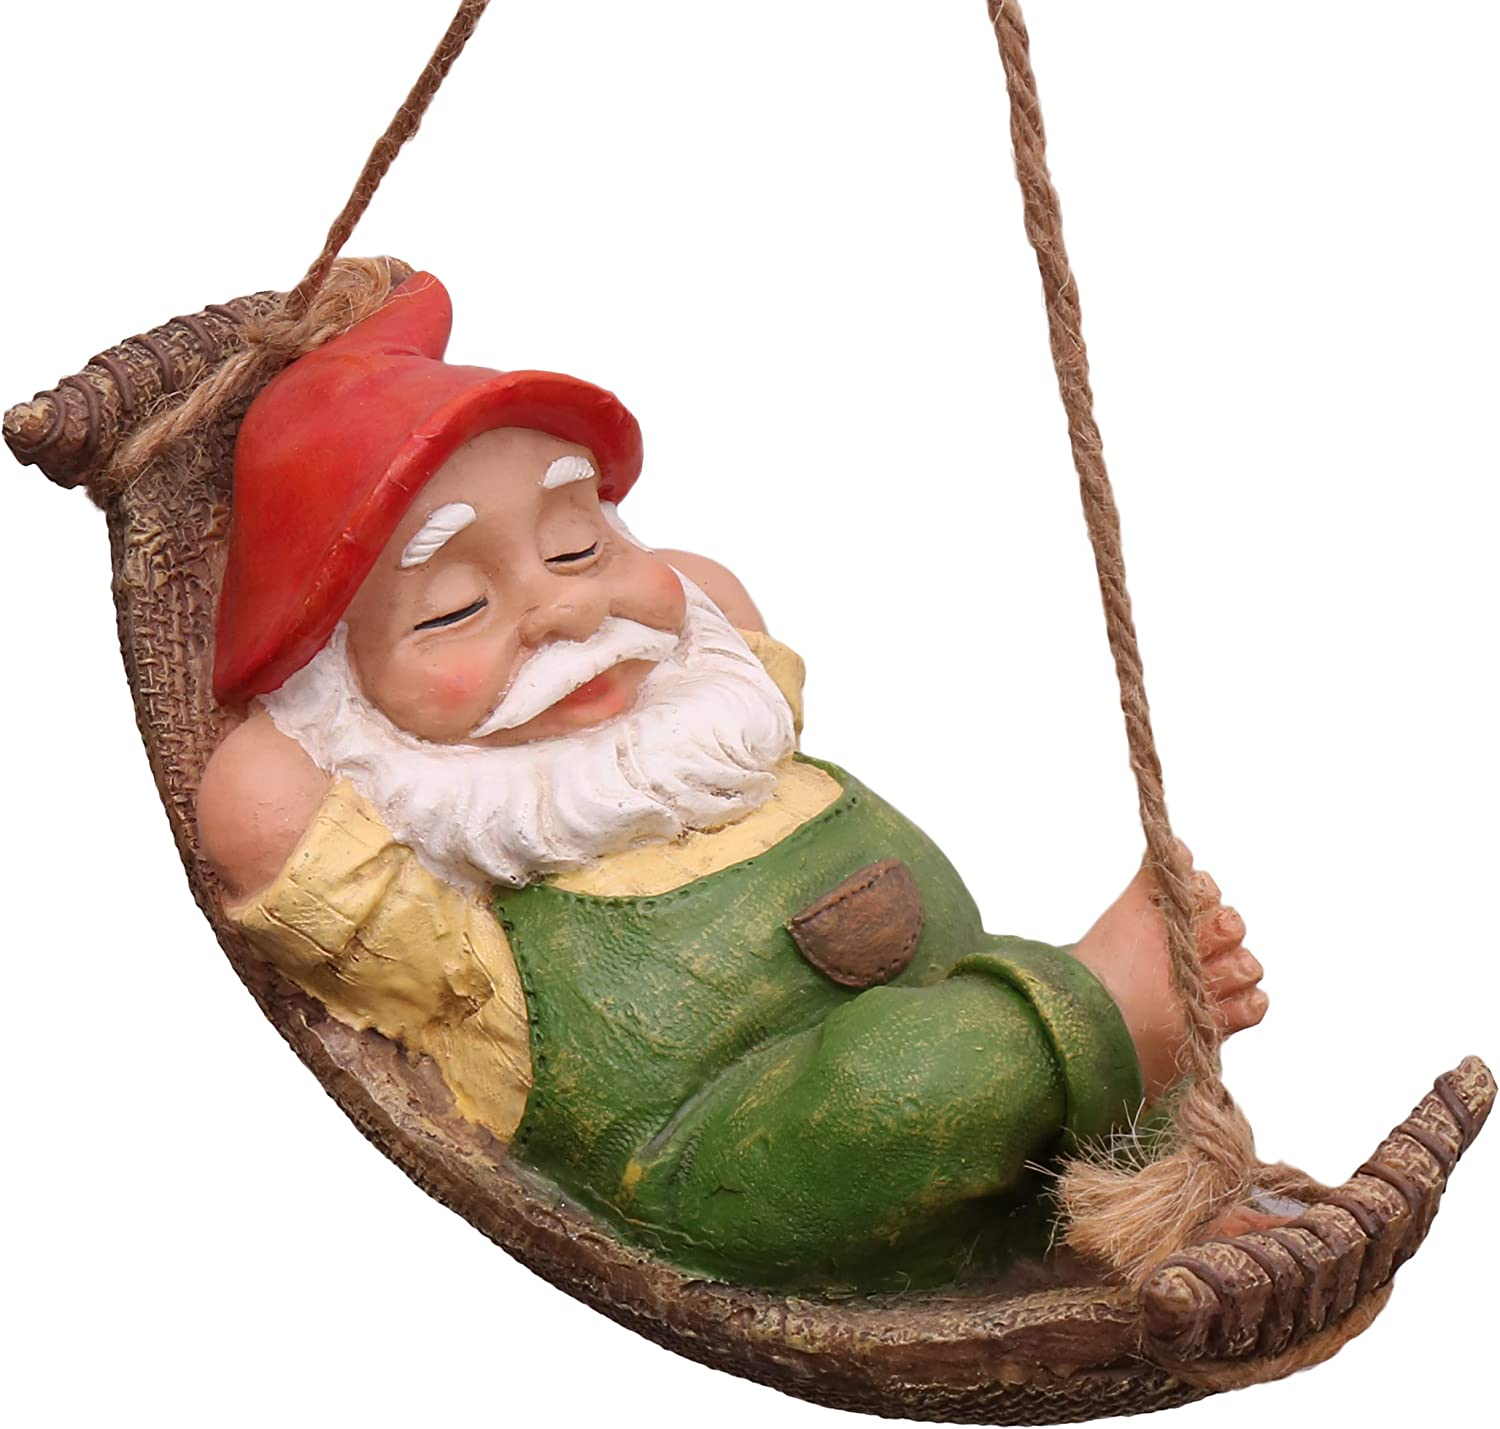 TERESA'S COLLECTIONS 7.3 Inch Funny Garden Gnomes Outdoor Hanging Statue, Fairy Garden Swinging Leaf Hammock Gnome for Lawn Patio Yard Decorations